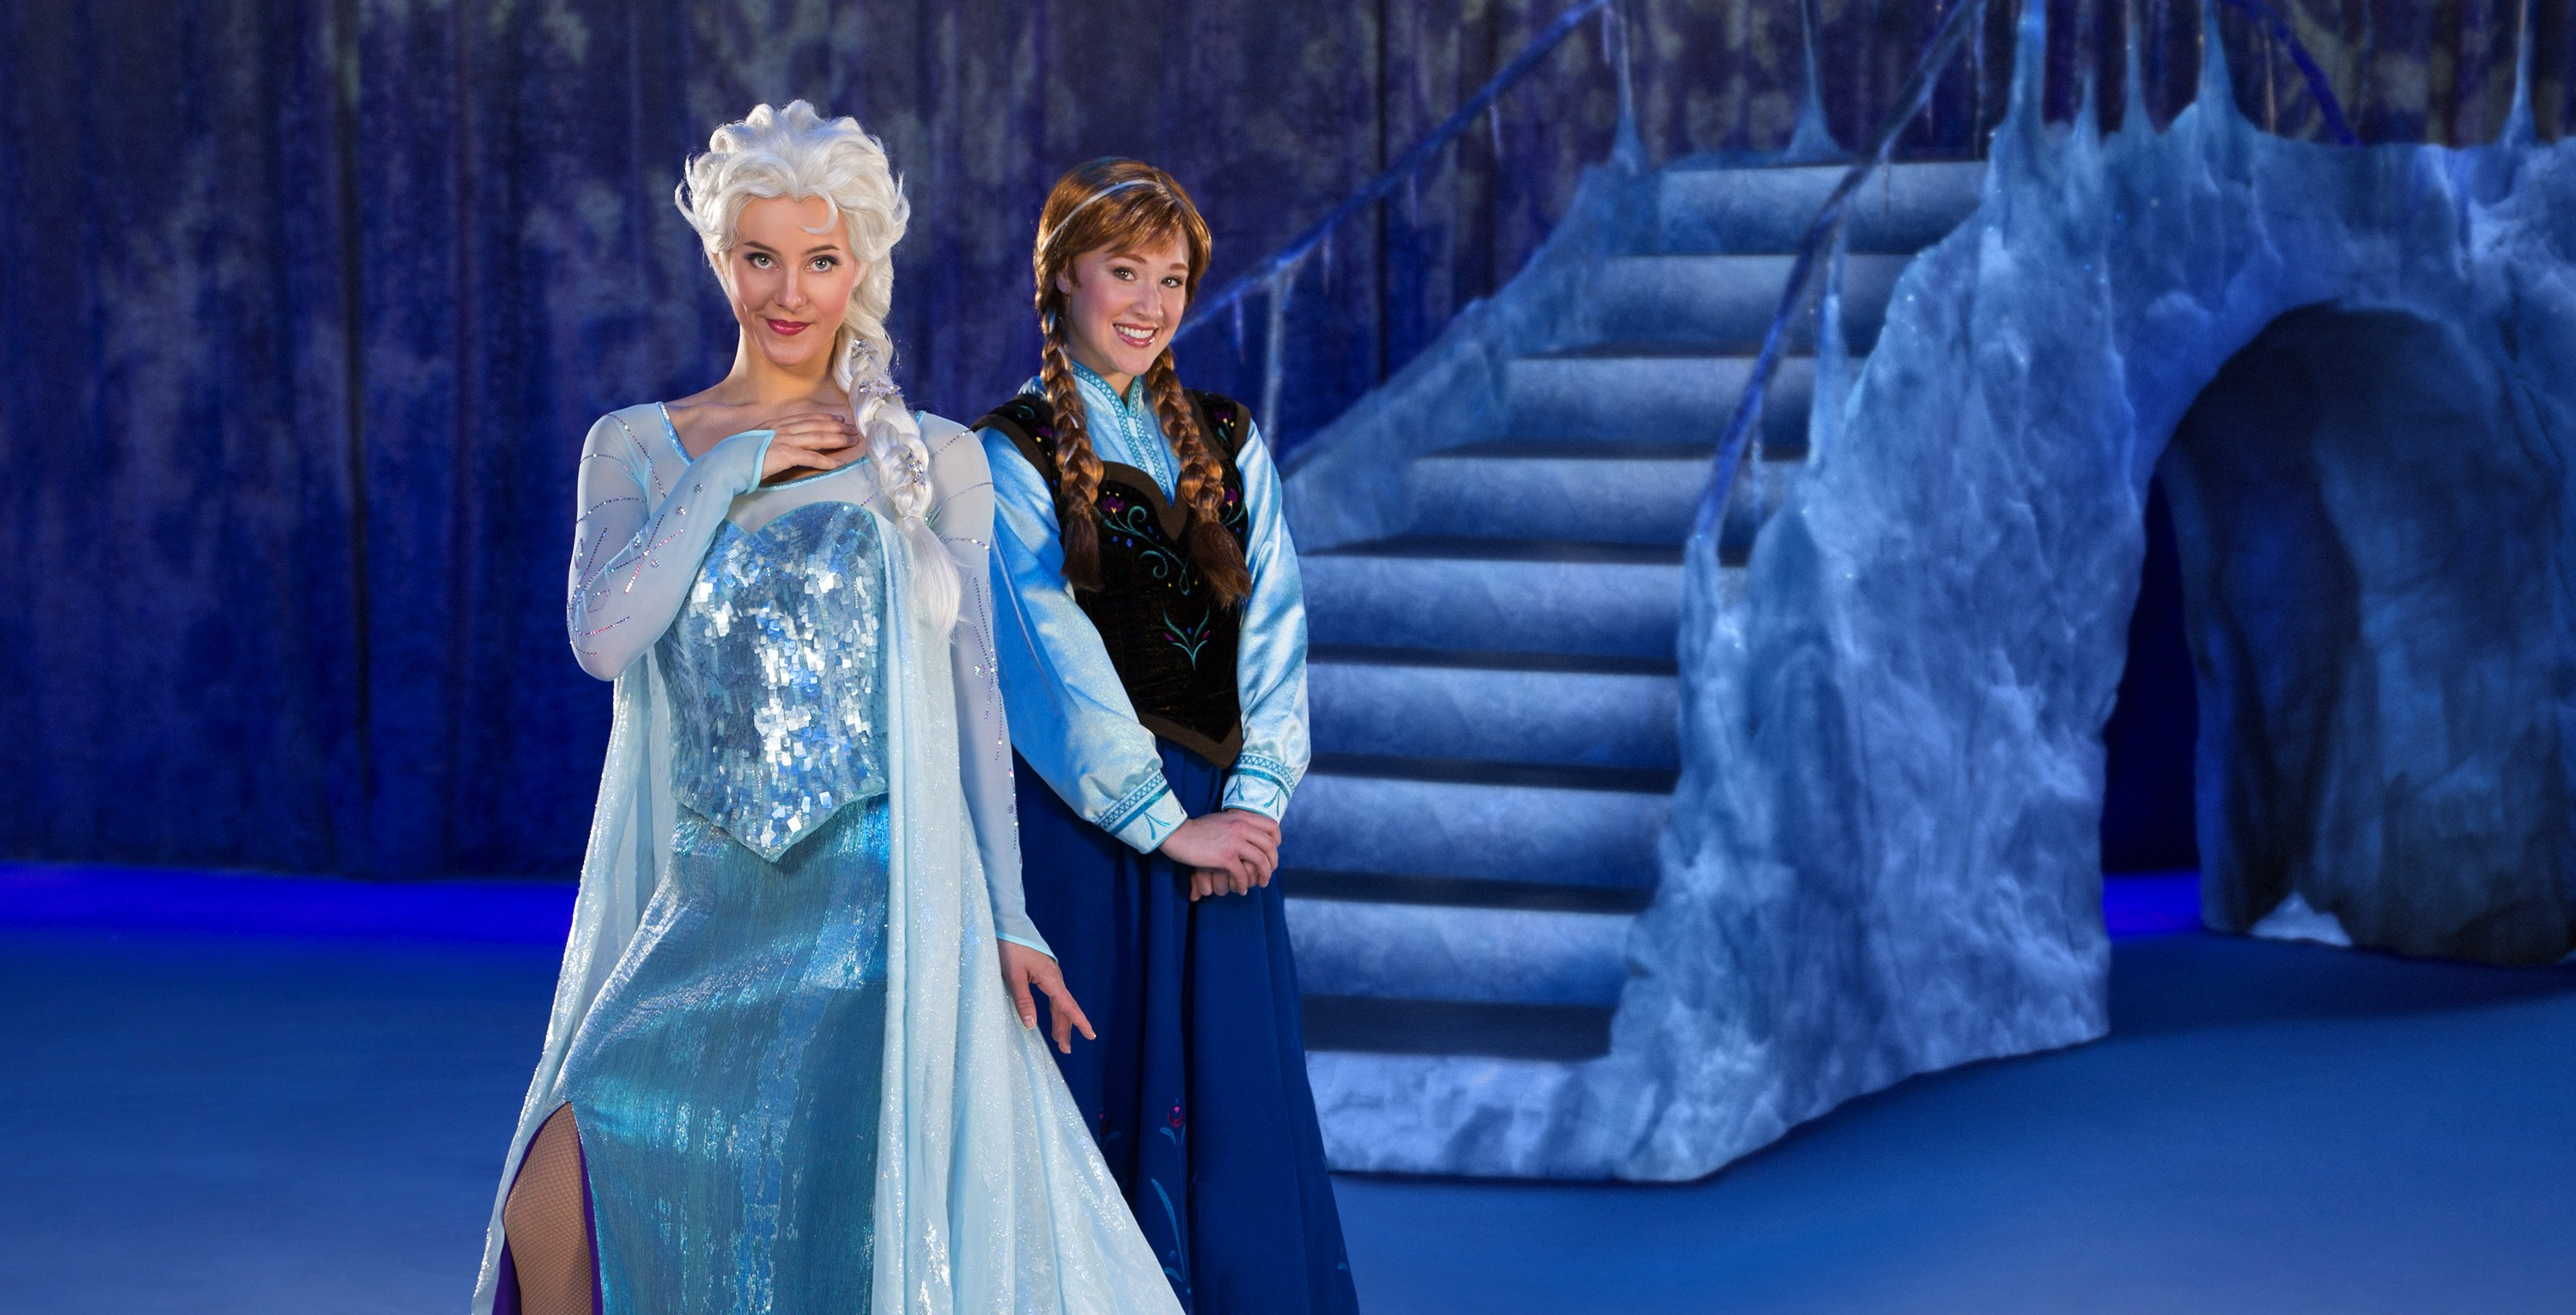 Disney On Ice: Frozen Tickets Houston Prices - Cheap Disney On Ice: Frozen Tickets on sale for the show on Thursday November 8 (11/08/18) at PM at the NRG Stadium in Houston.